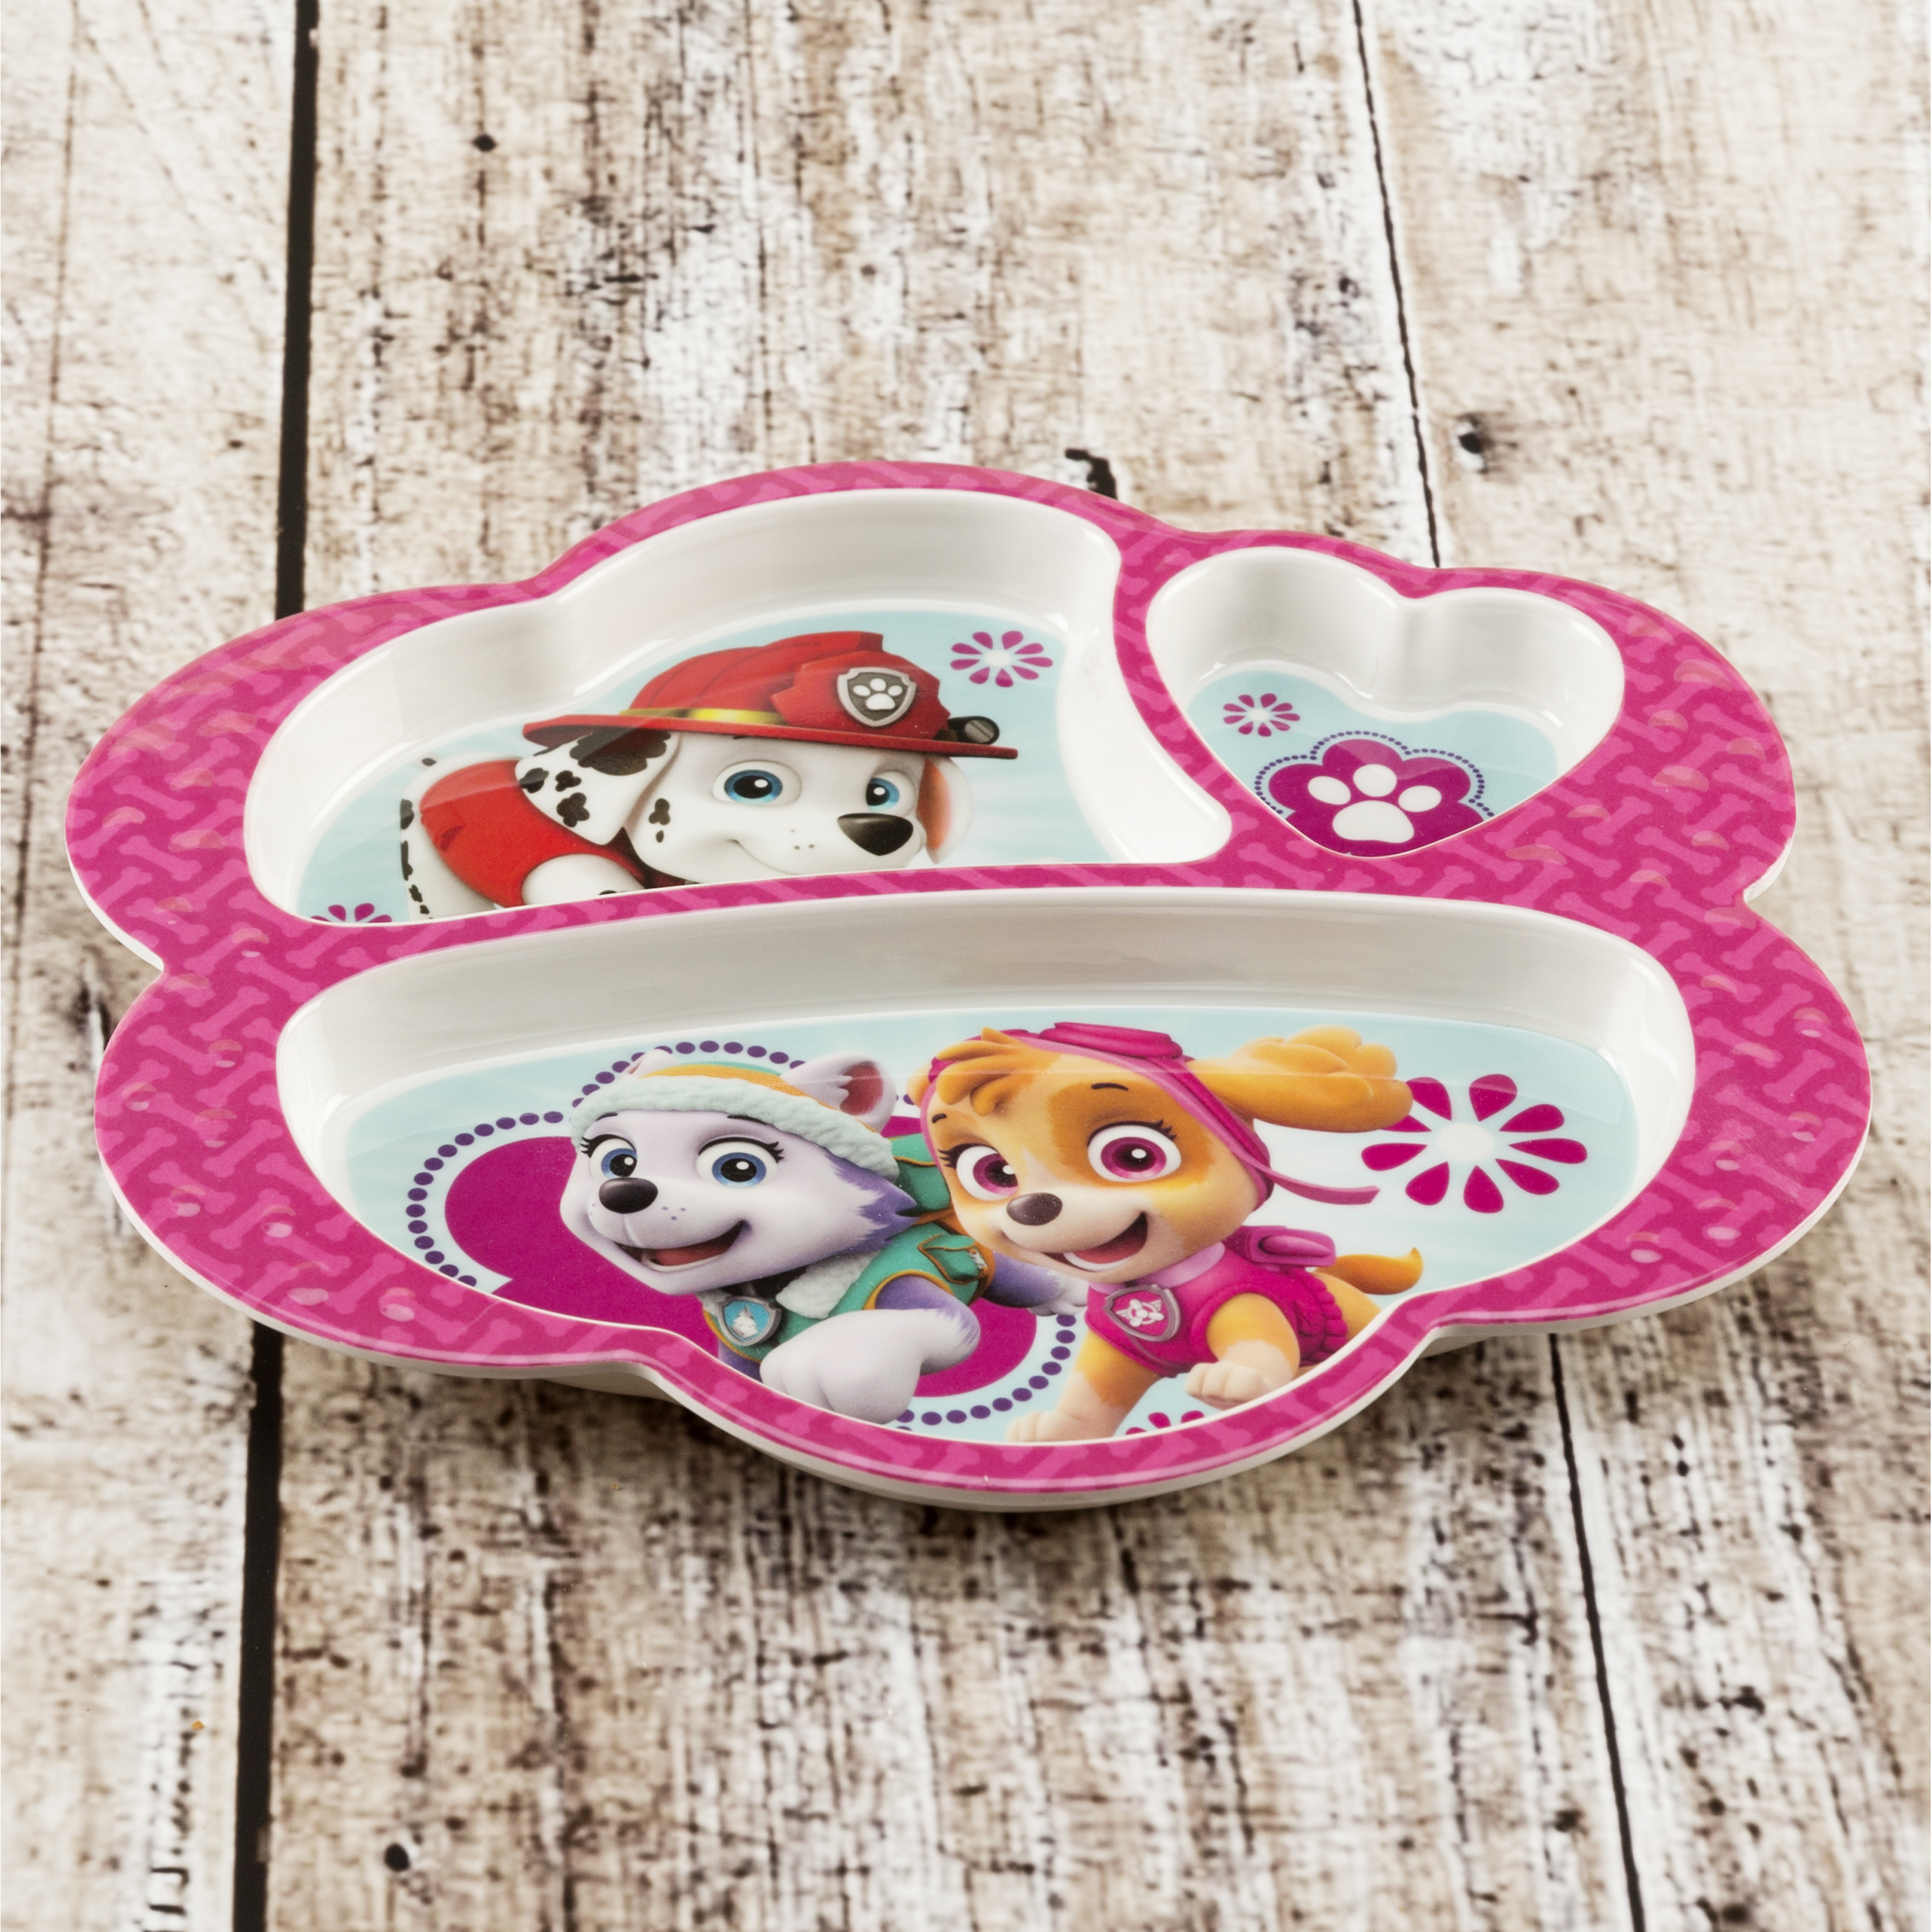 Paw Patrol Kid's Dinnerware Set, Skye, Everest and Marshall, 3-piece set slideshow image 4